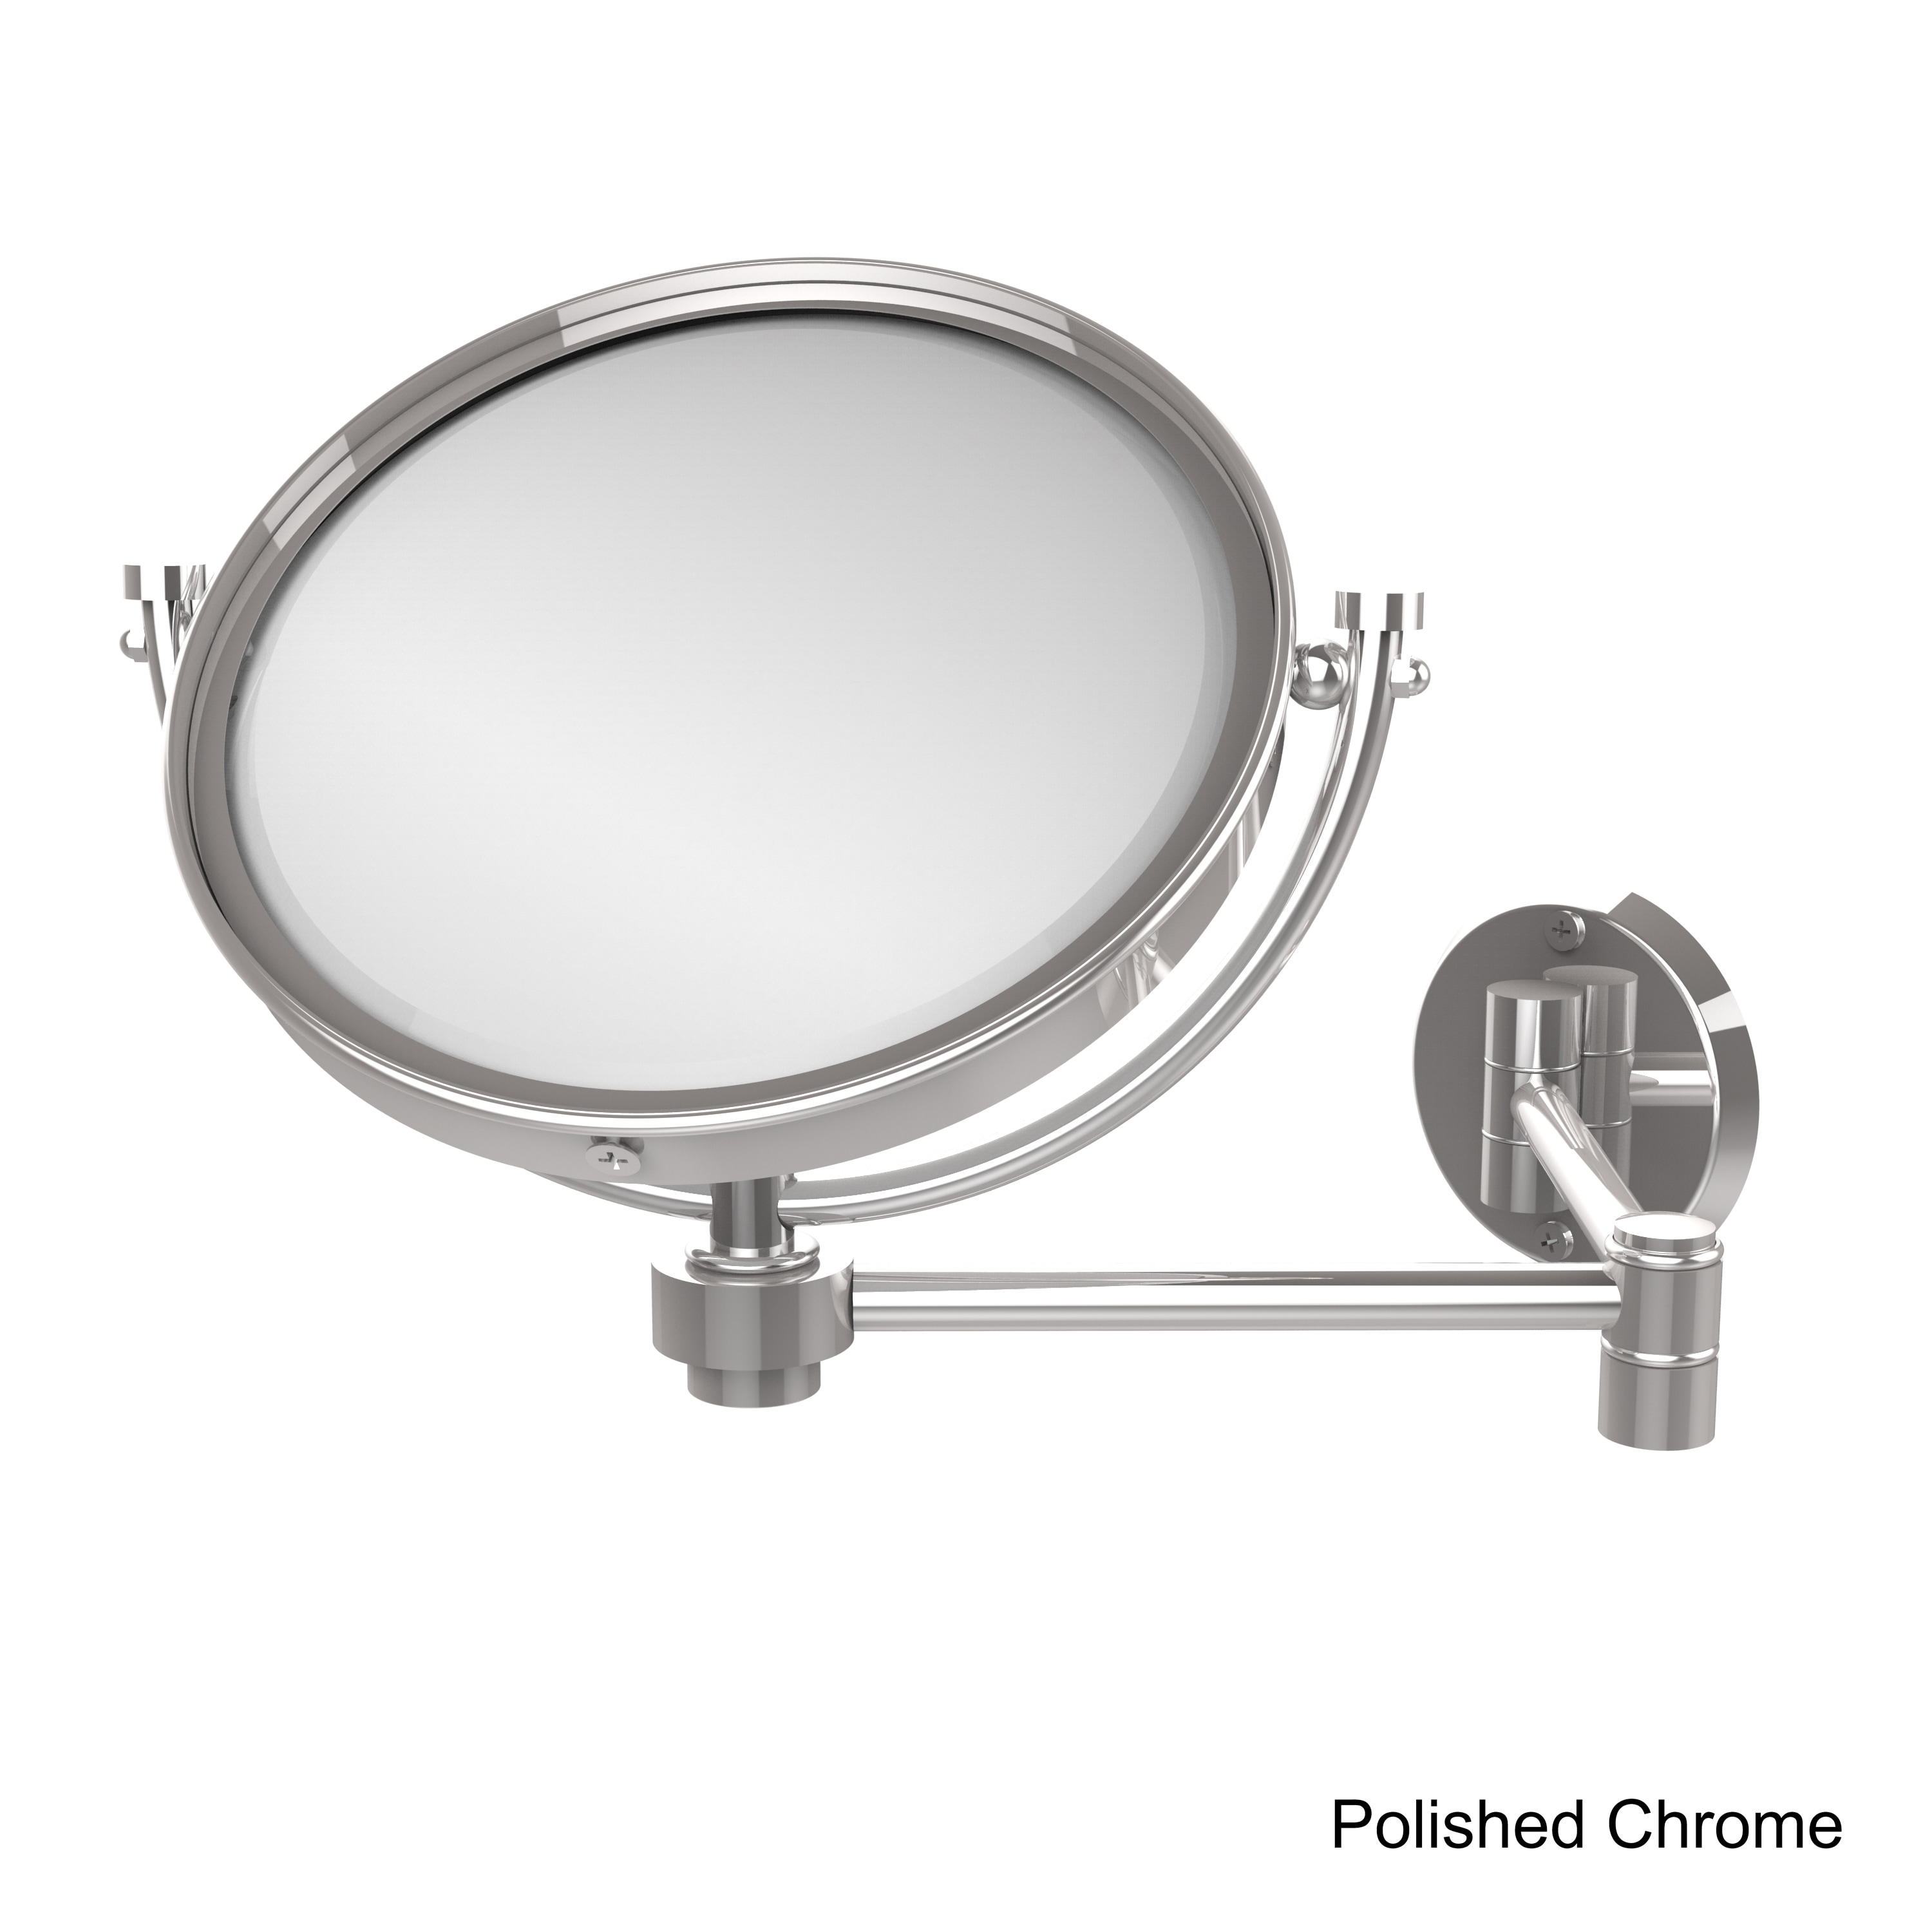 Allied Br 8 Inch Wall Mounted Extending Make Up Mirror With 5x Magnification Free Shipping Today 12363910